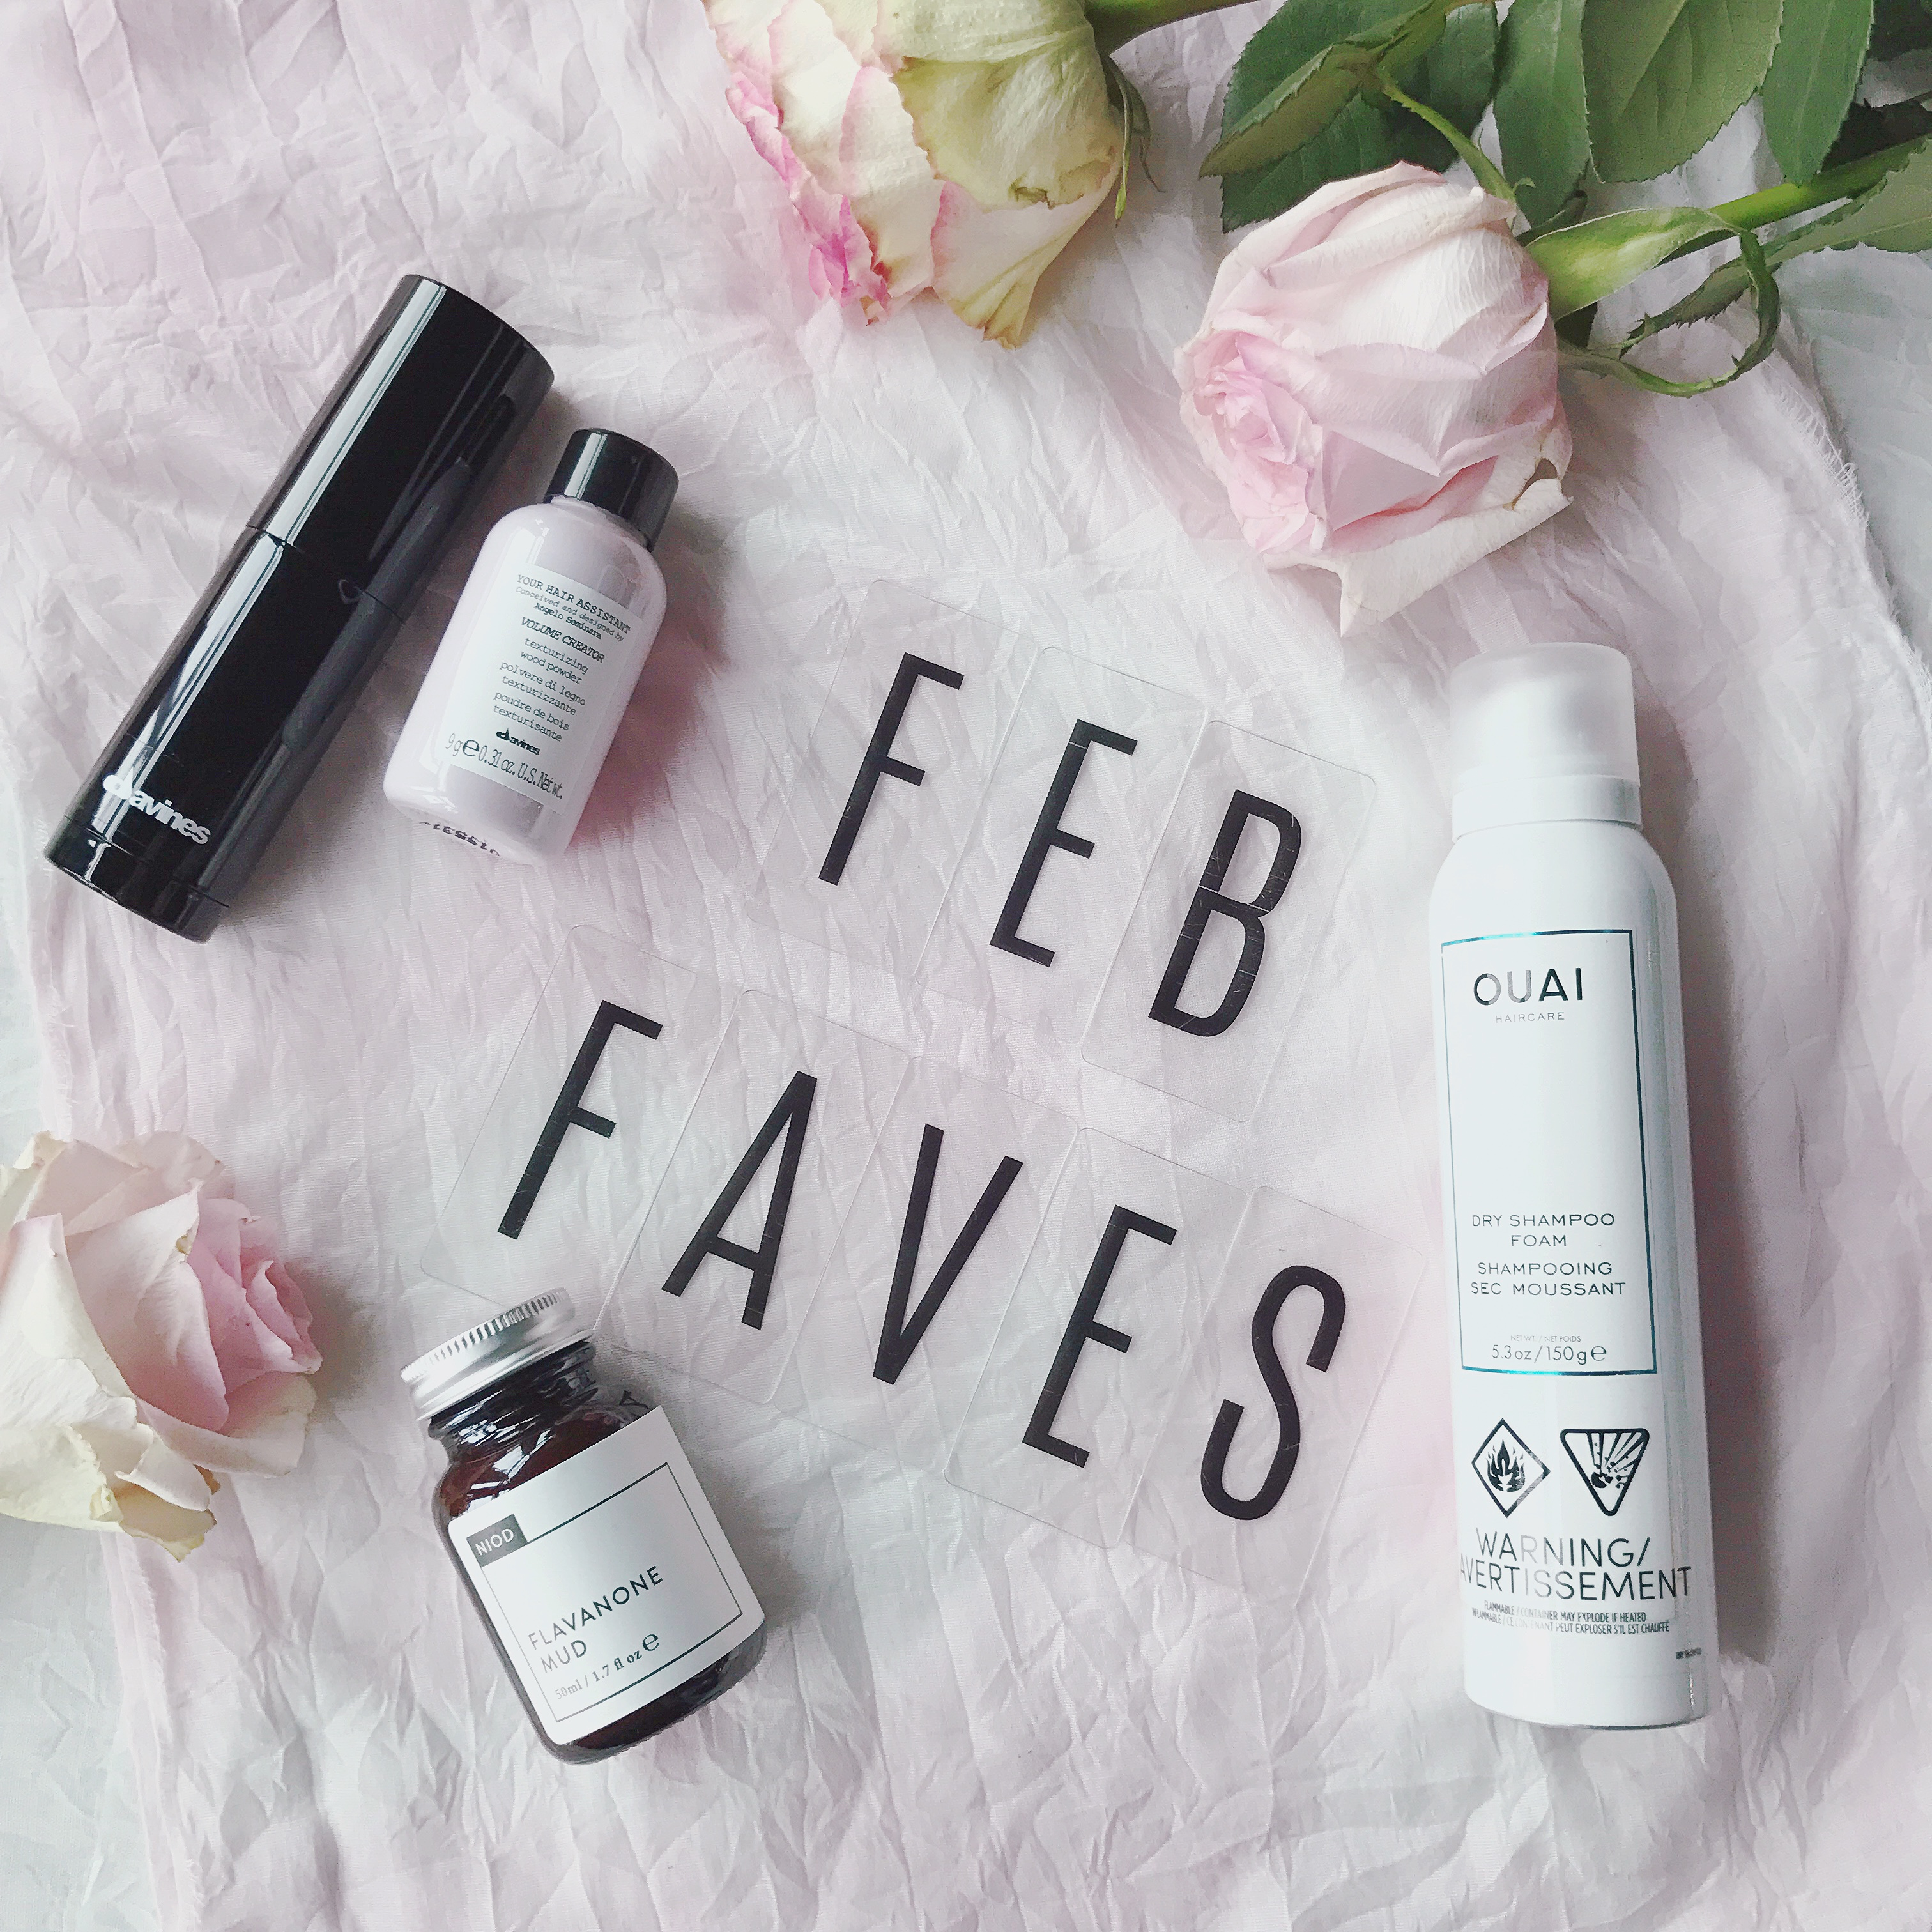 February Favorites – Featuring the Ouai, Davines and Niod